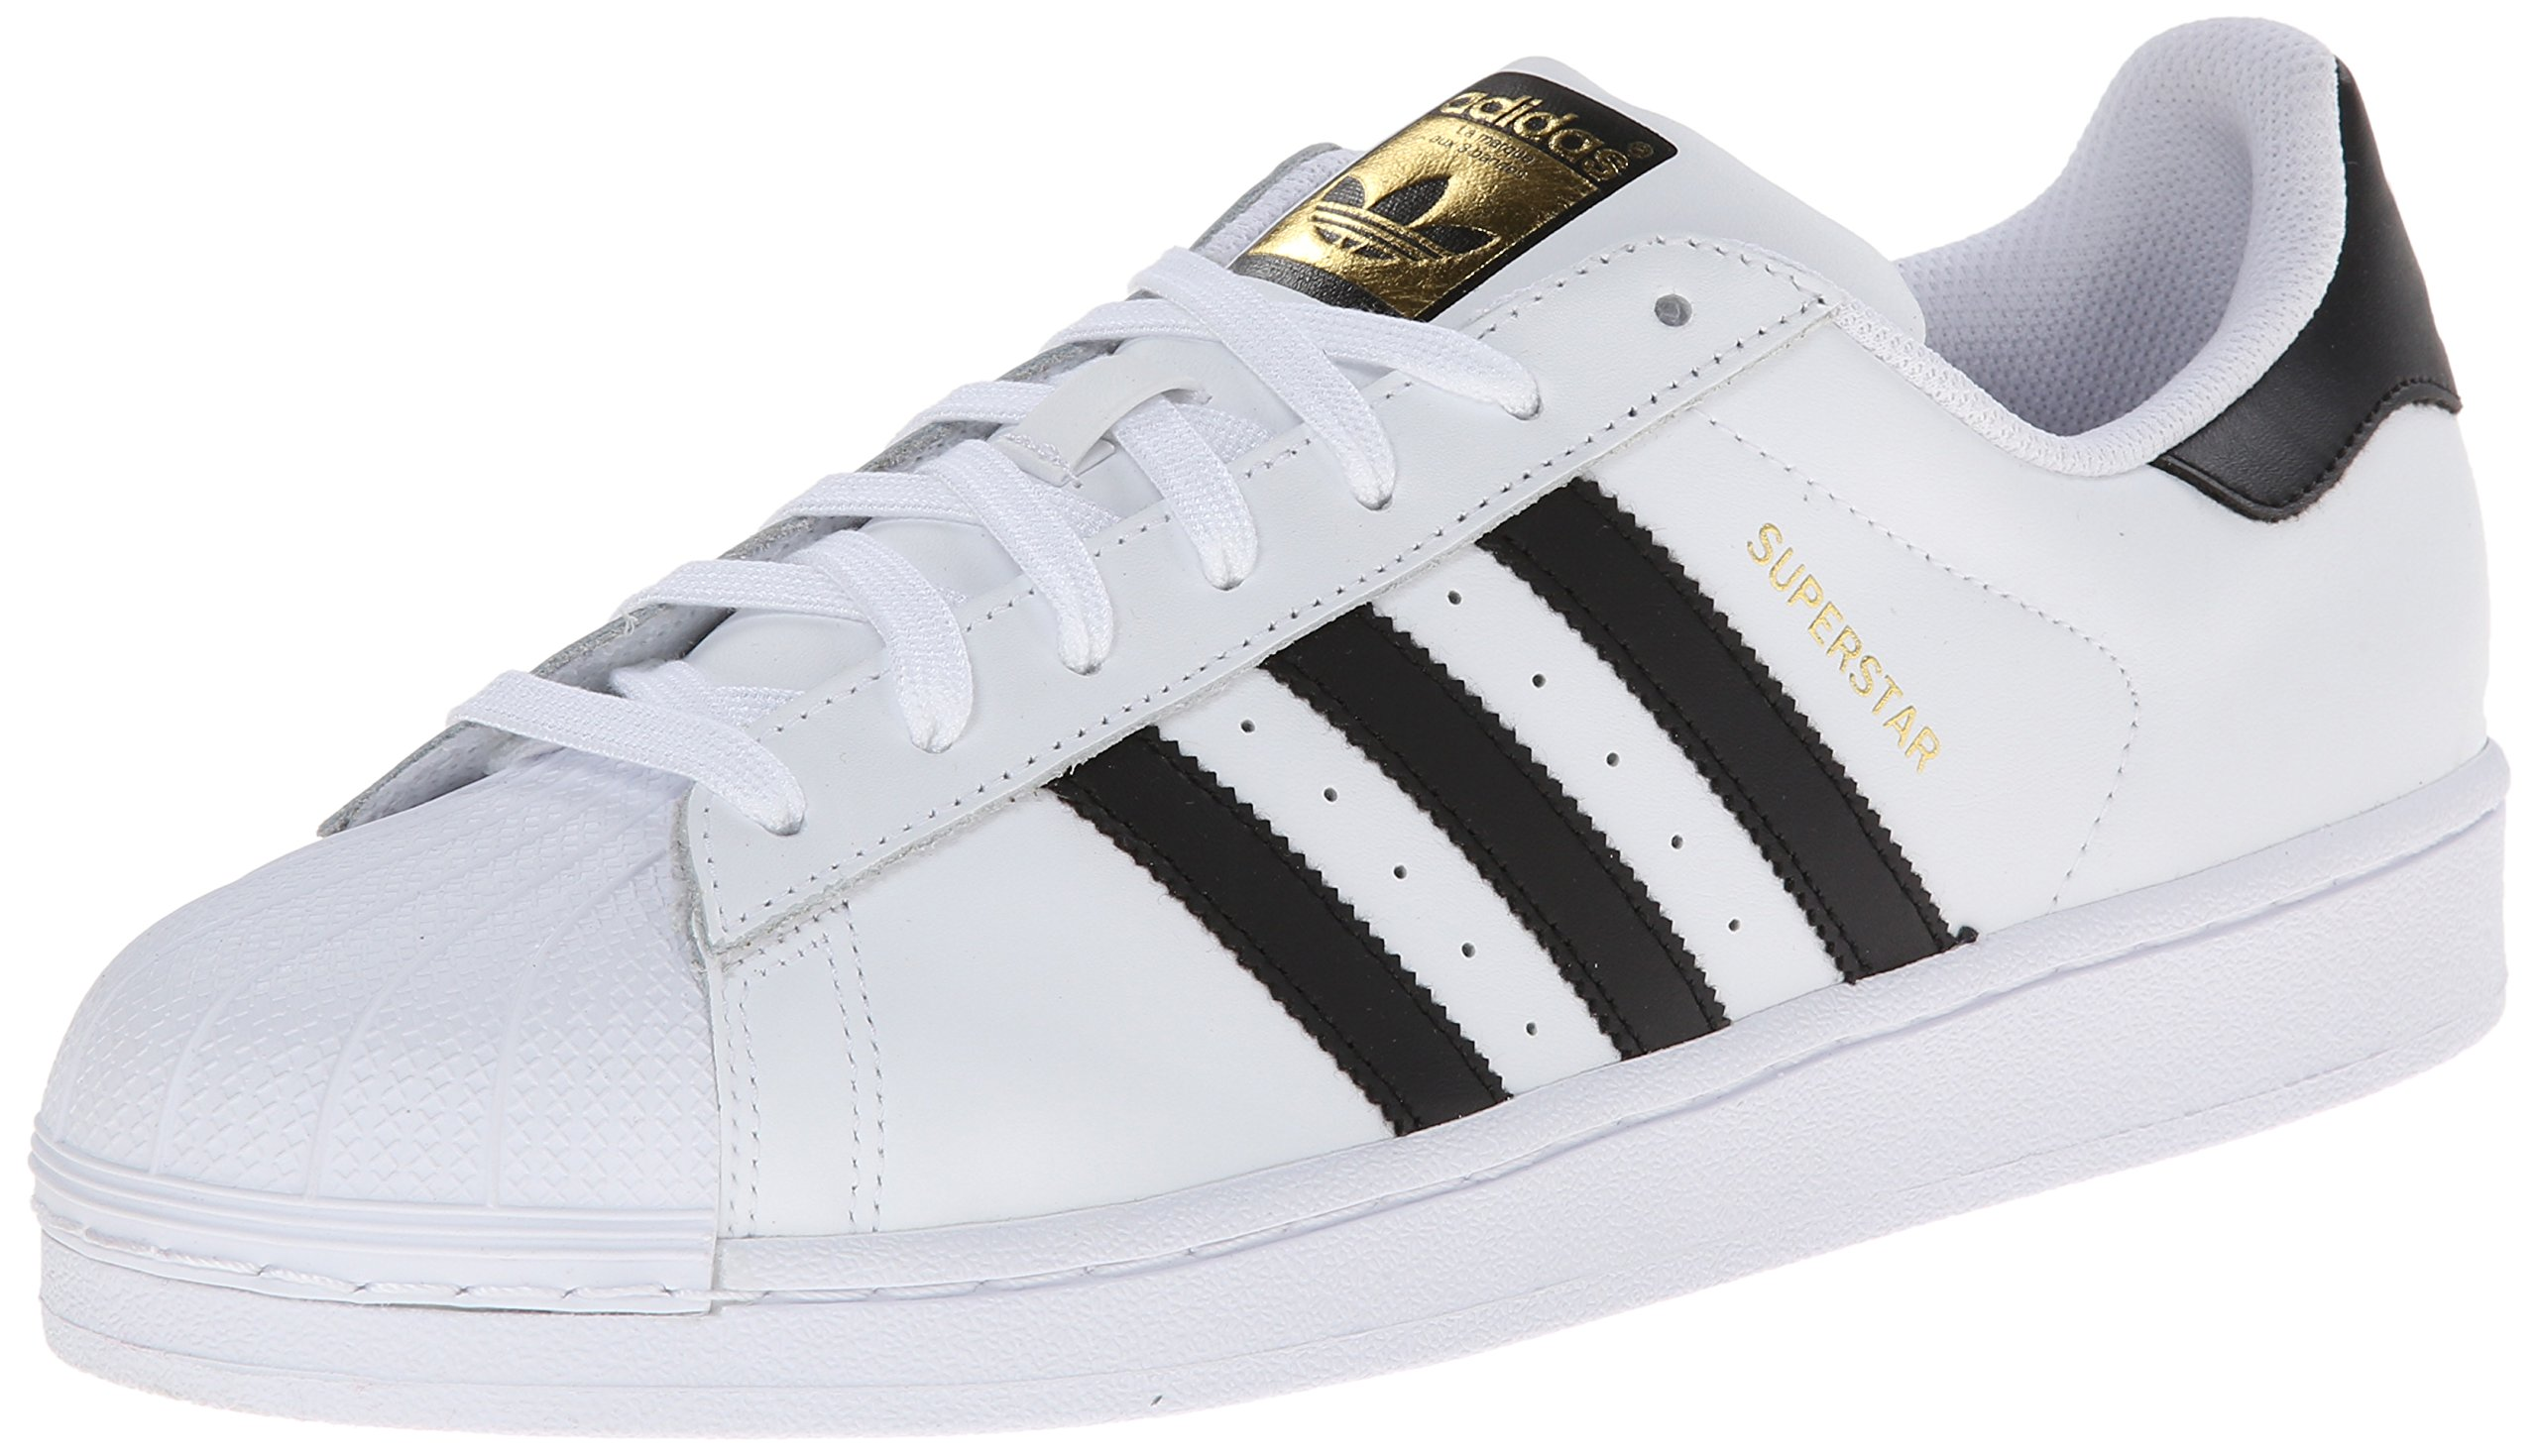 adidas Originals Men's Superstar Casual Sneaker, White/Core Black/White, 4.5 M US by adidas Originals